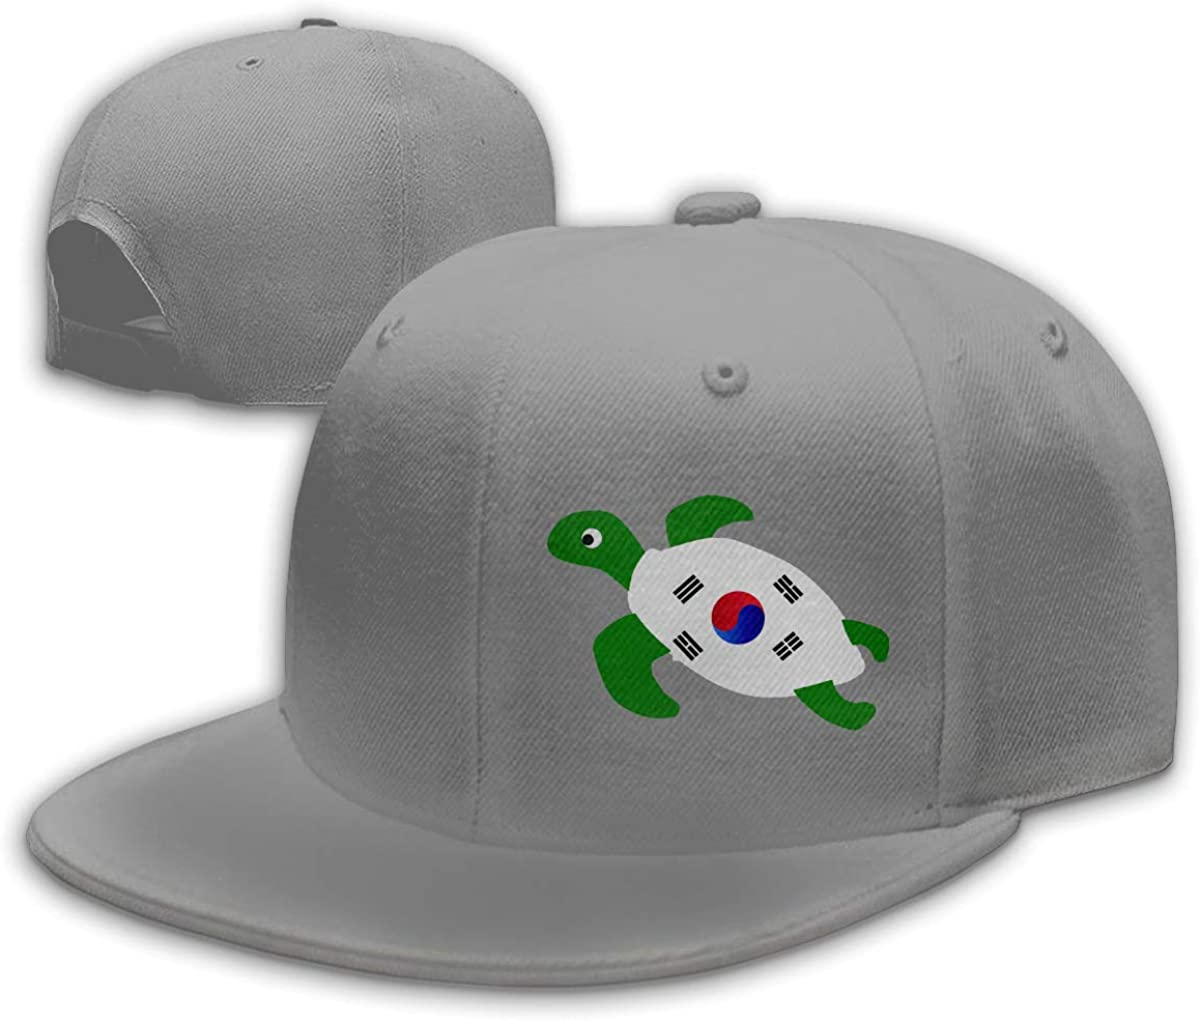 Sea Turtle Flag of South Korea Adjustable Flat Bill Snapback Baseball Hip-hop Cap Hat